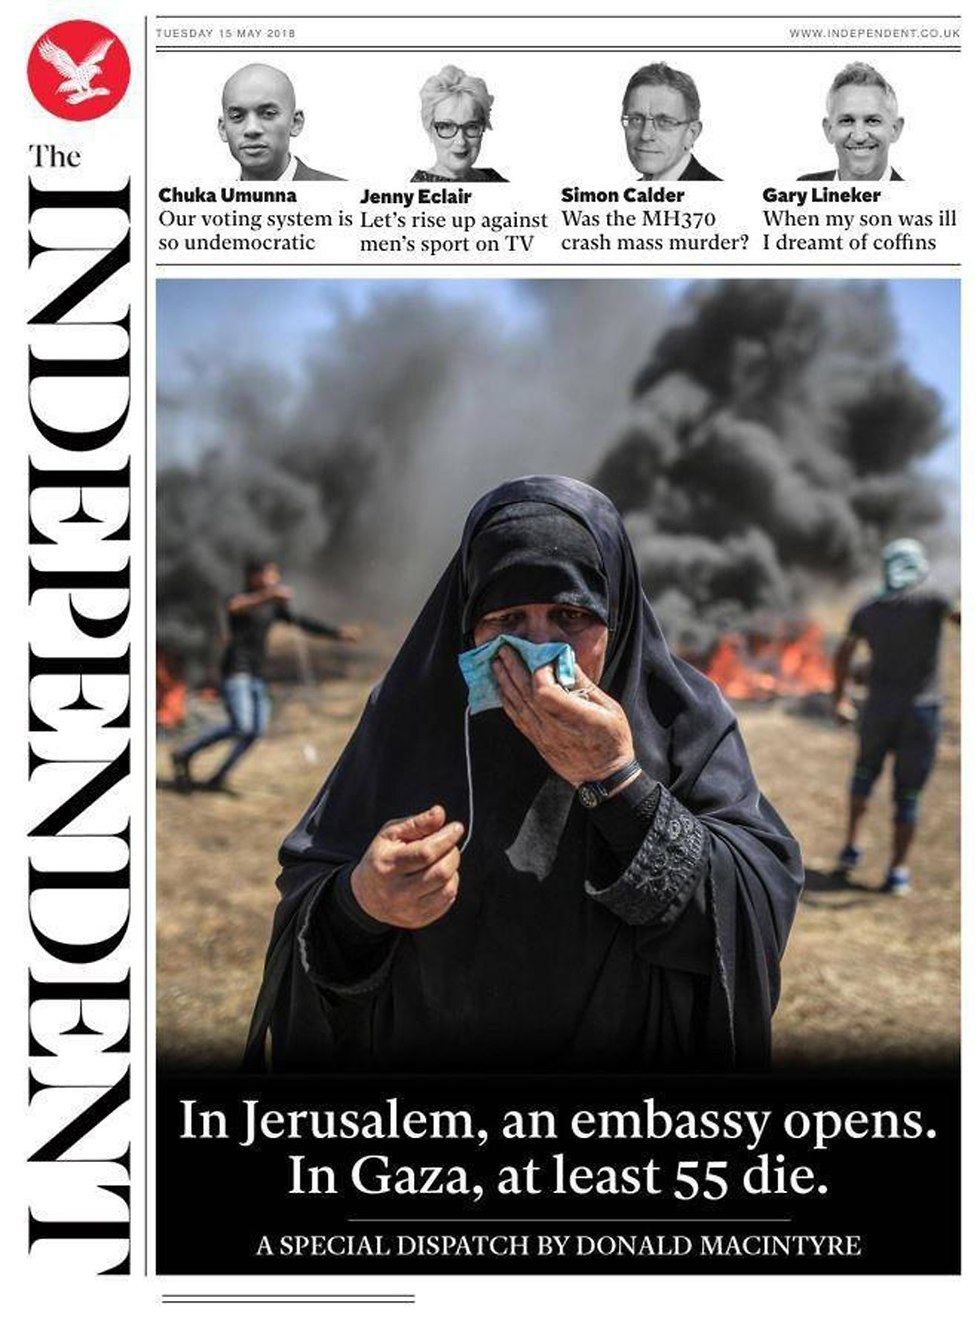 The Independent links the US embassy opening to the events in Gaza